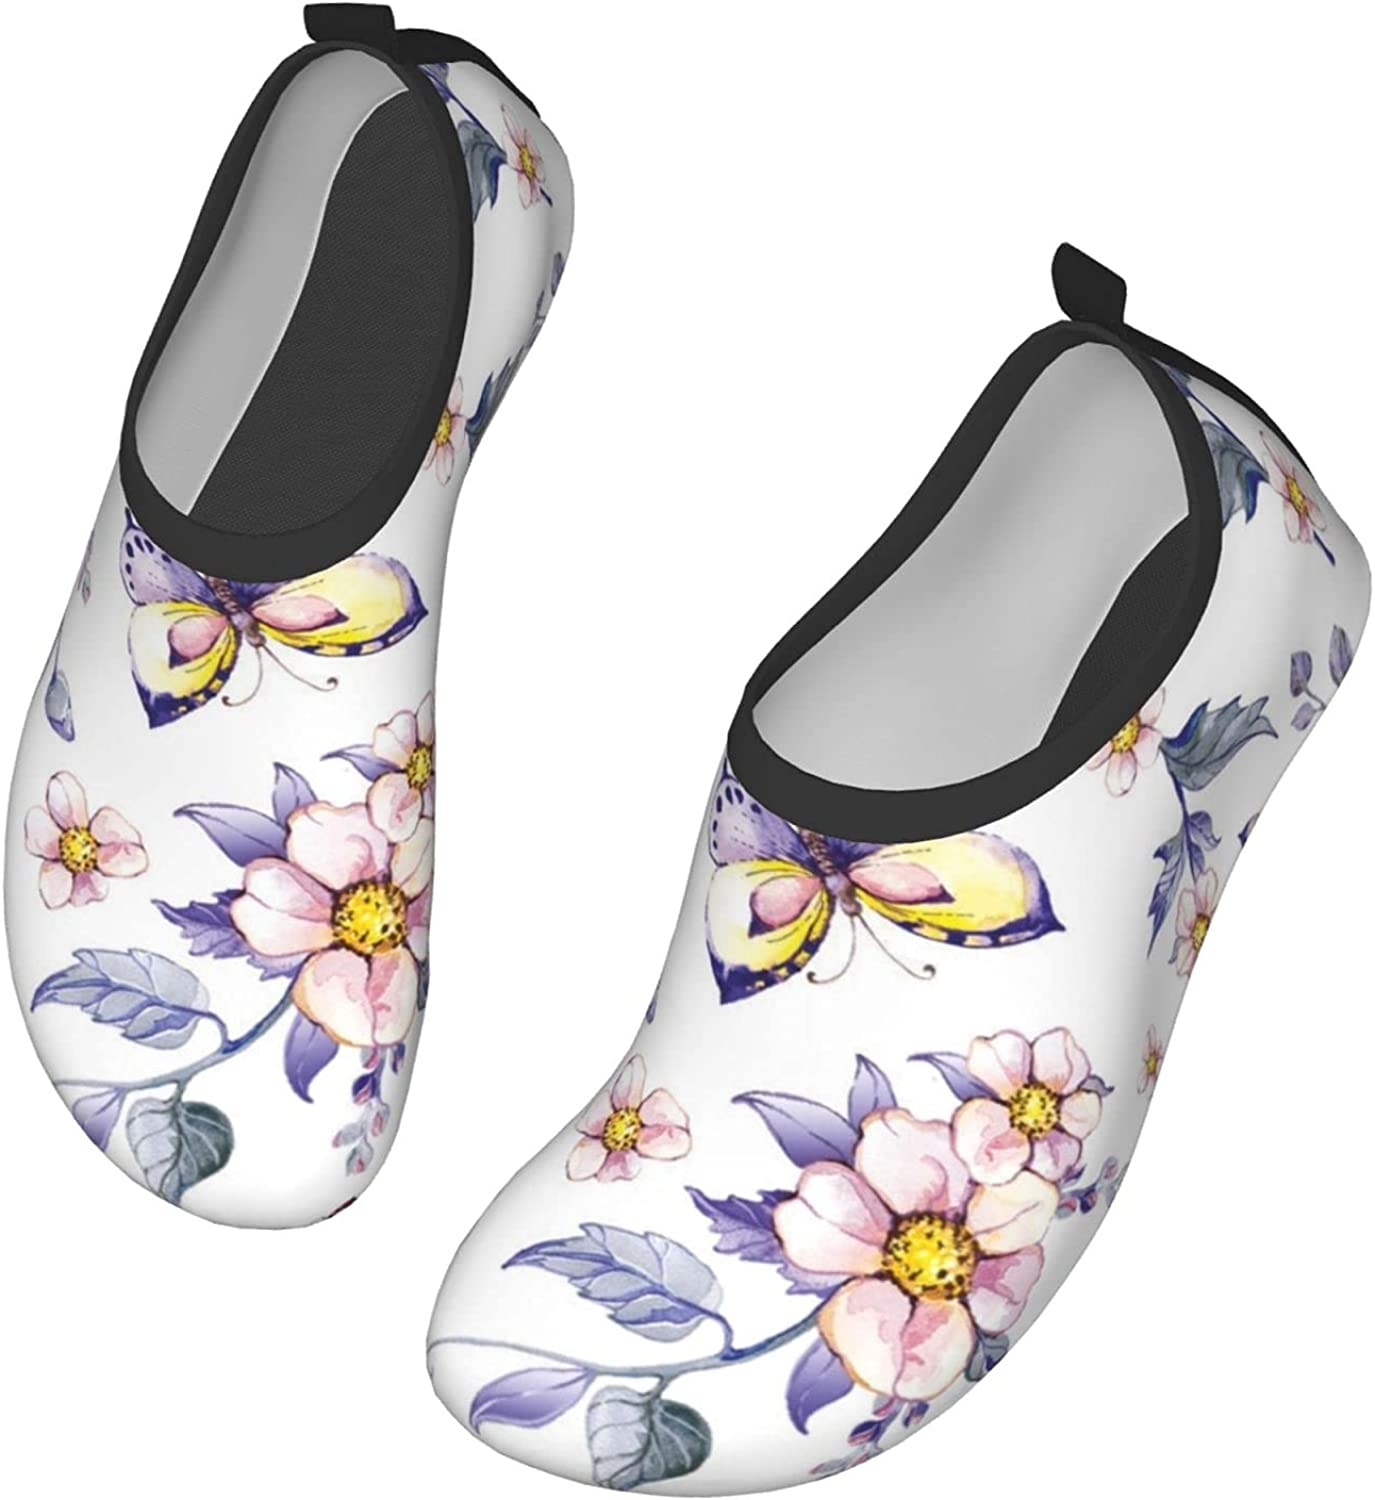 Fasso with Flowers, Leaves, Butterflies Womens and Mens Water Shoes Barefoot Quick-Dry Aqua Socks Slip-On for Outdoor Beach Swim Yoga